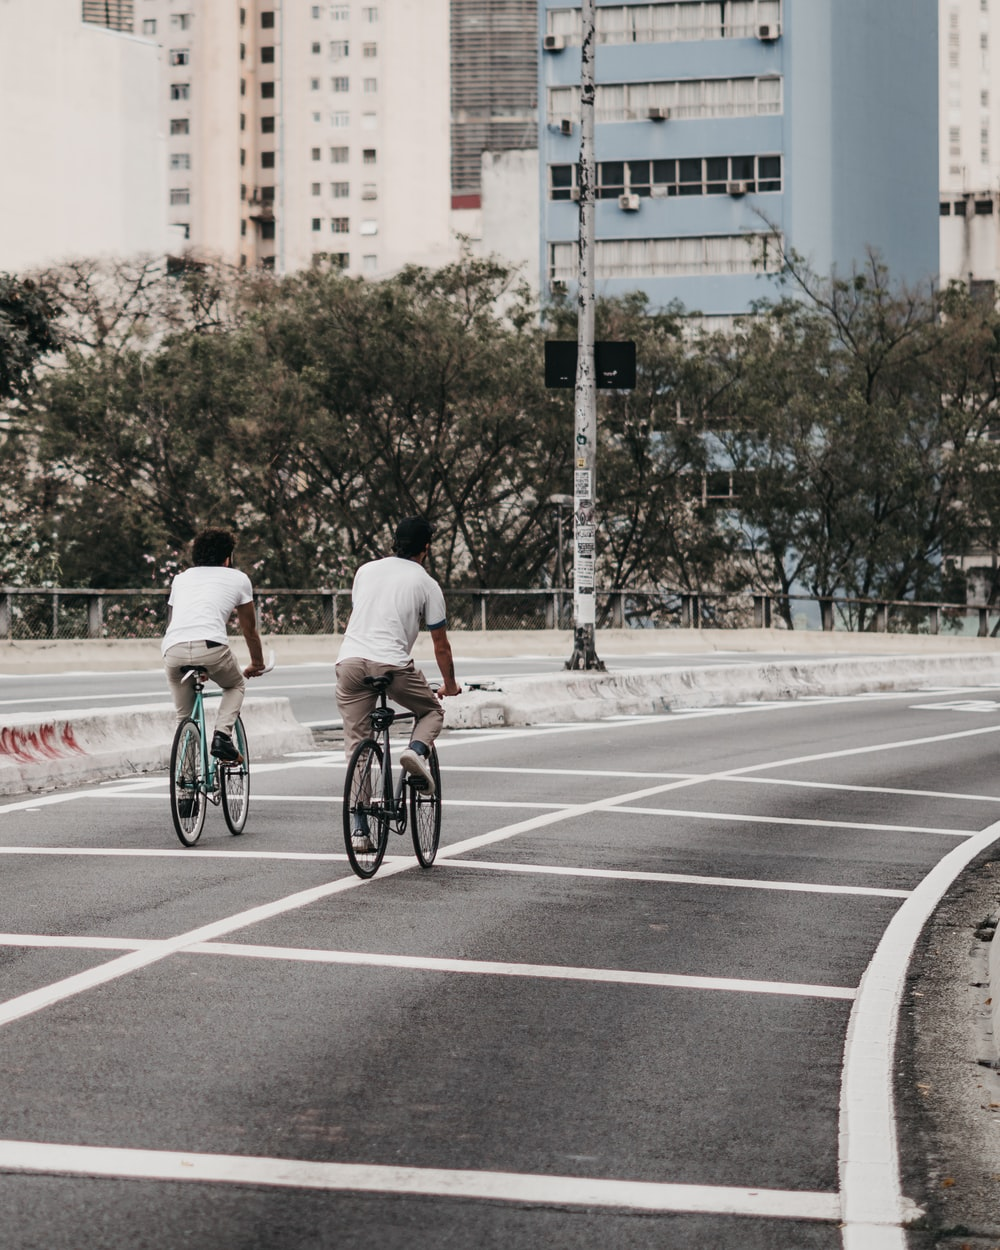 two men riding a bicycles